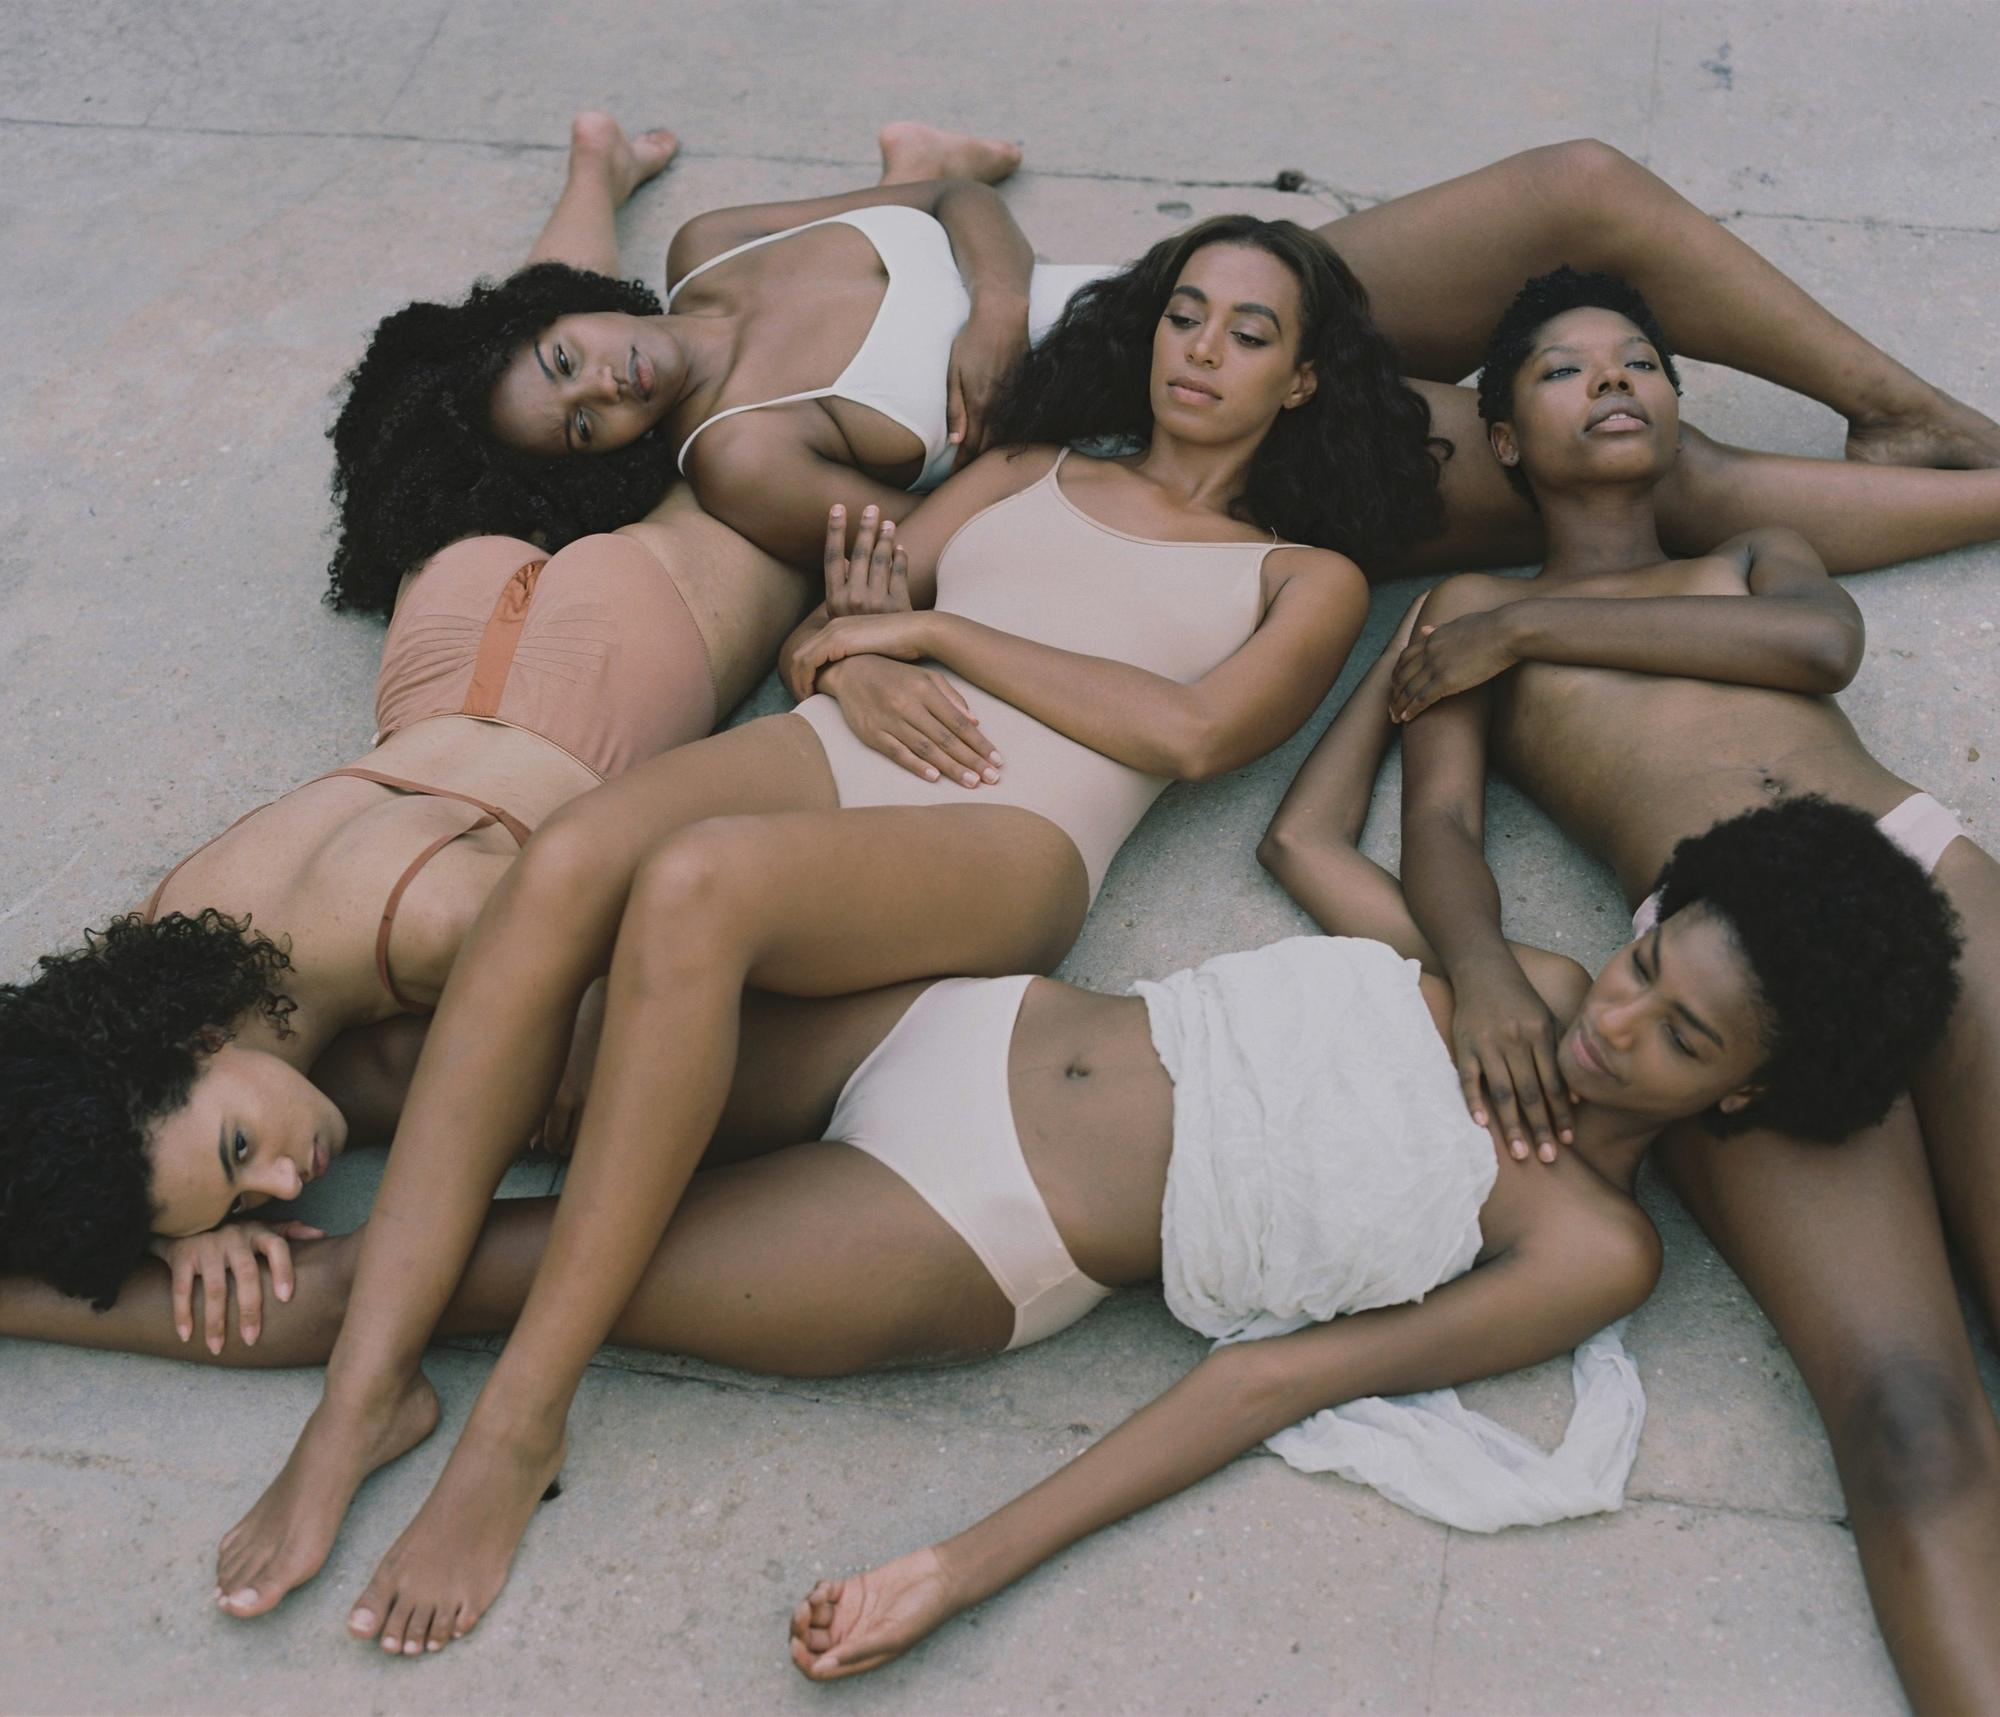 before-solanges-new-album-cover-carlota-guerrero-was-shooting-sensitive-nudes-body-image-1475264215